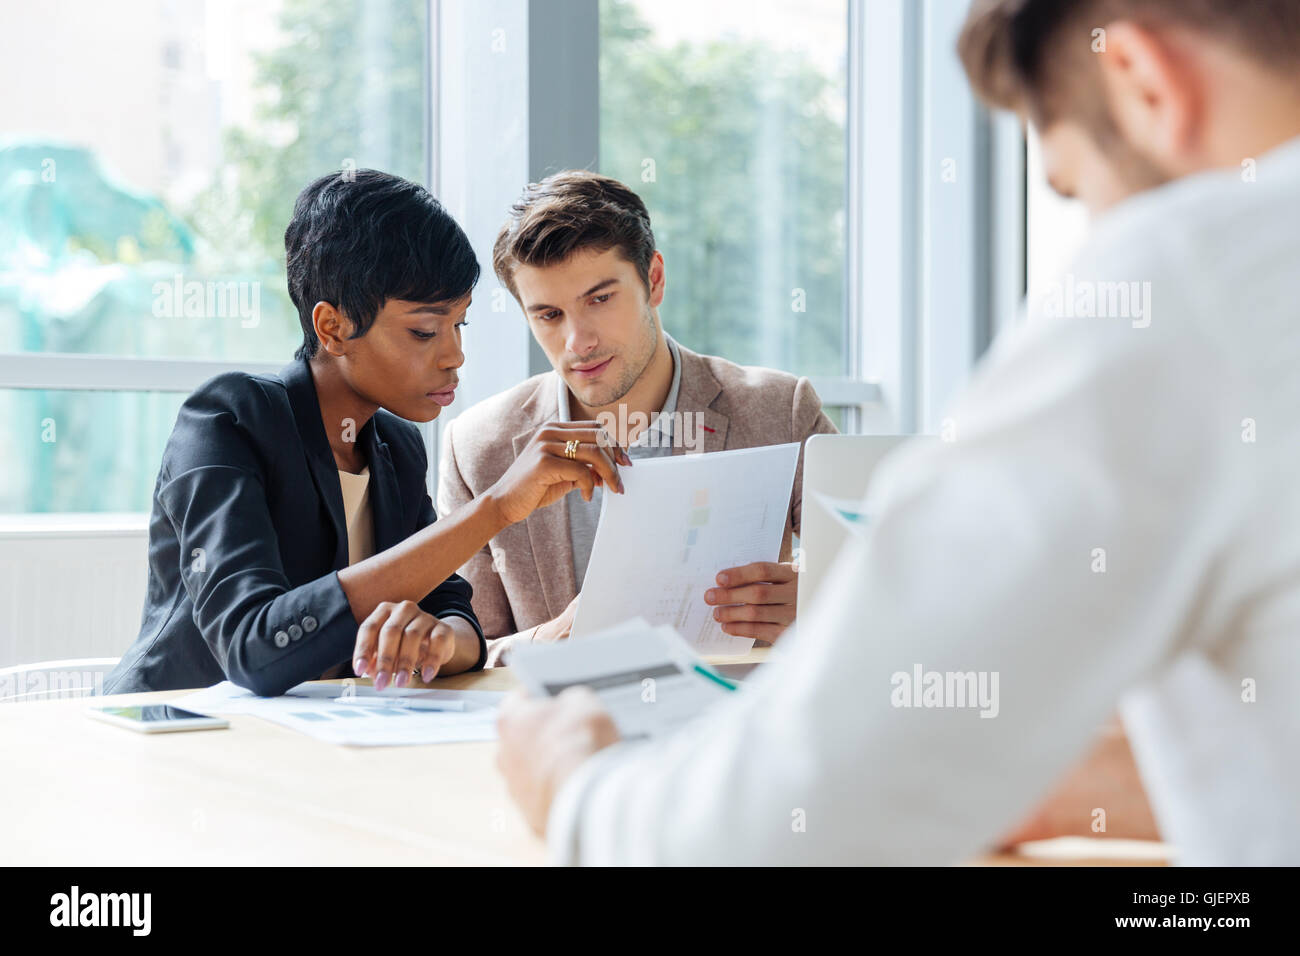 Multiethnic group of young business partners discussing ideas in conference room - Stock Image